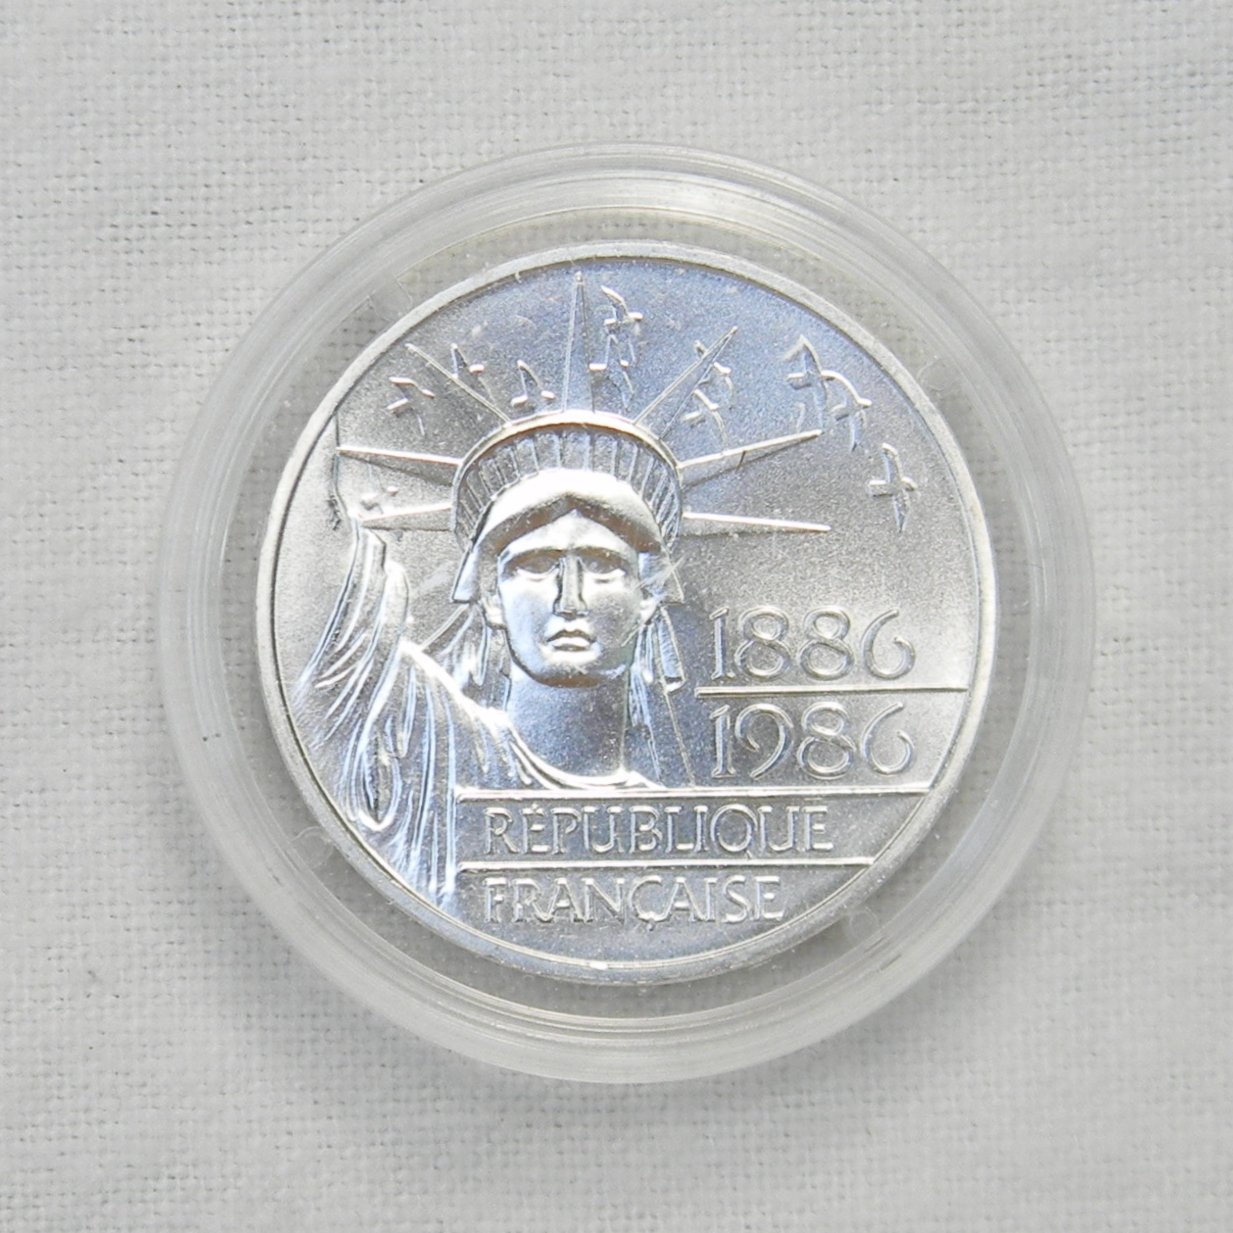 Free Shipping USA Silver 100 Franc France Piedfort Statue of Liberty 3 1986